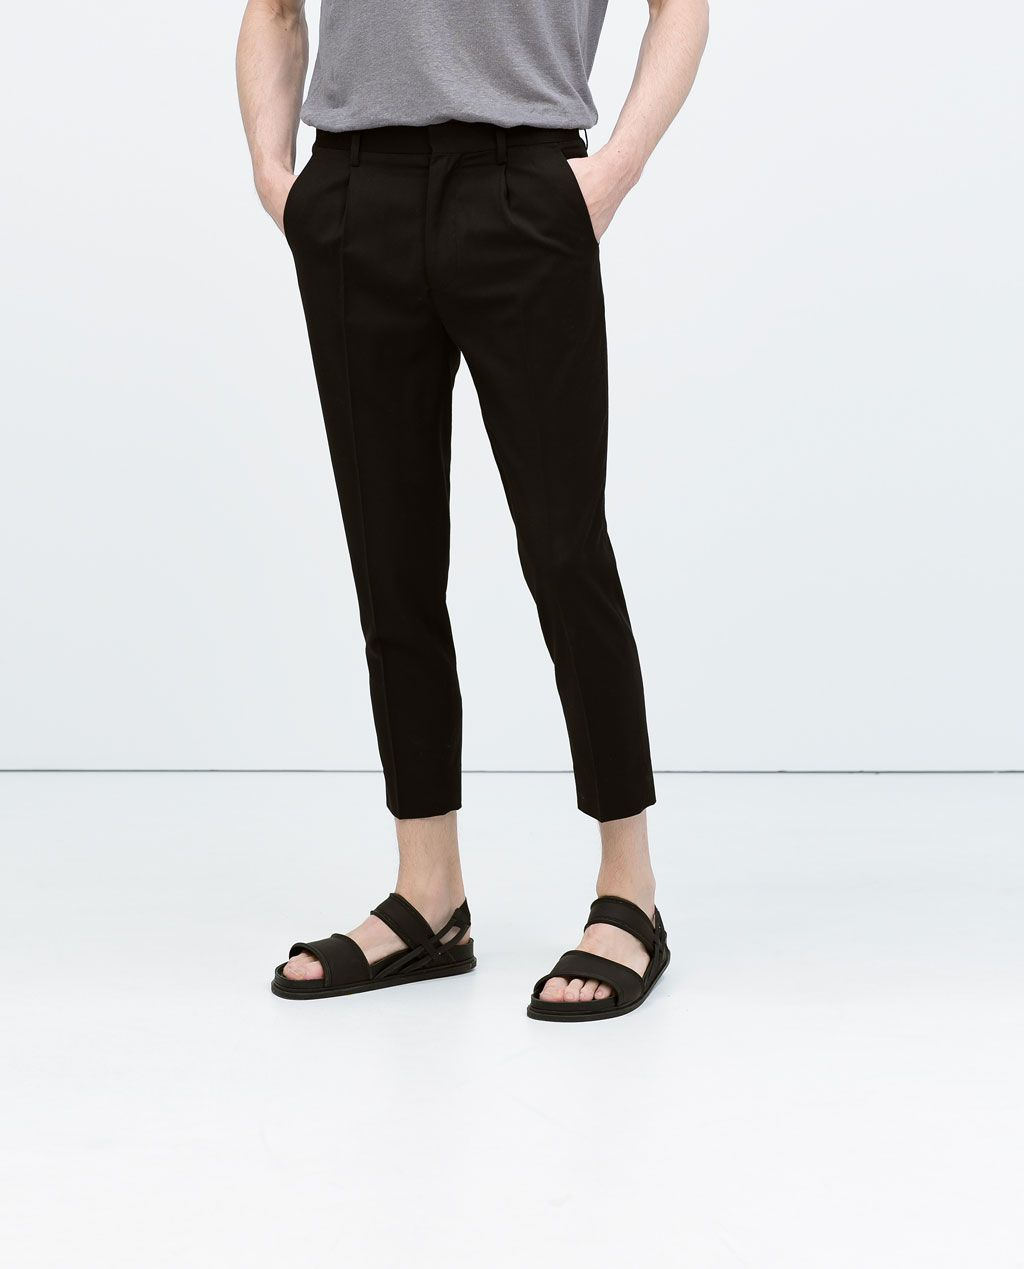 94dfaff9 Cropped trousers-View all-Trousers-MAN | ZARA United Kingdom | Men's ...